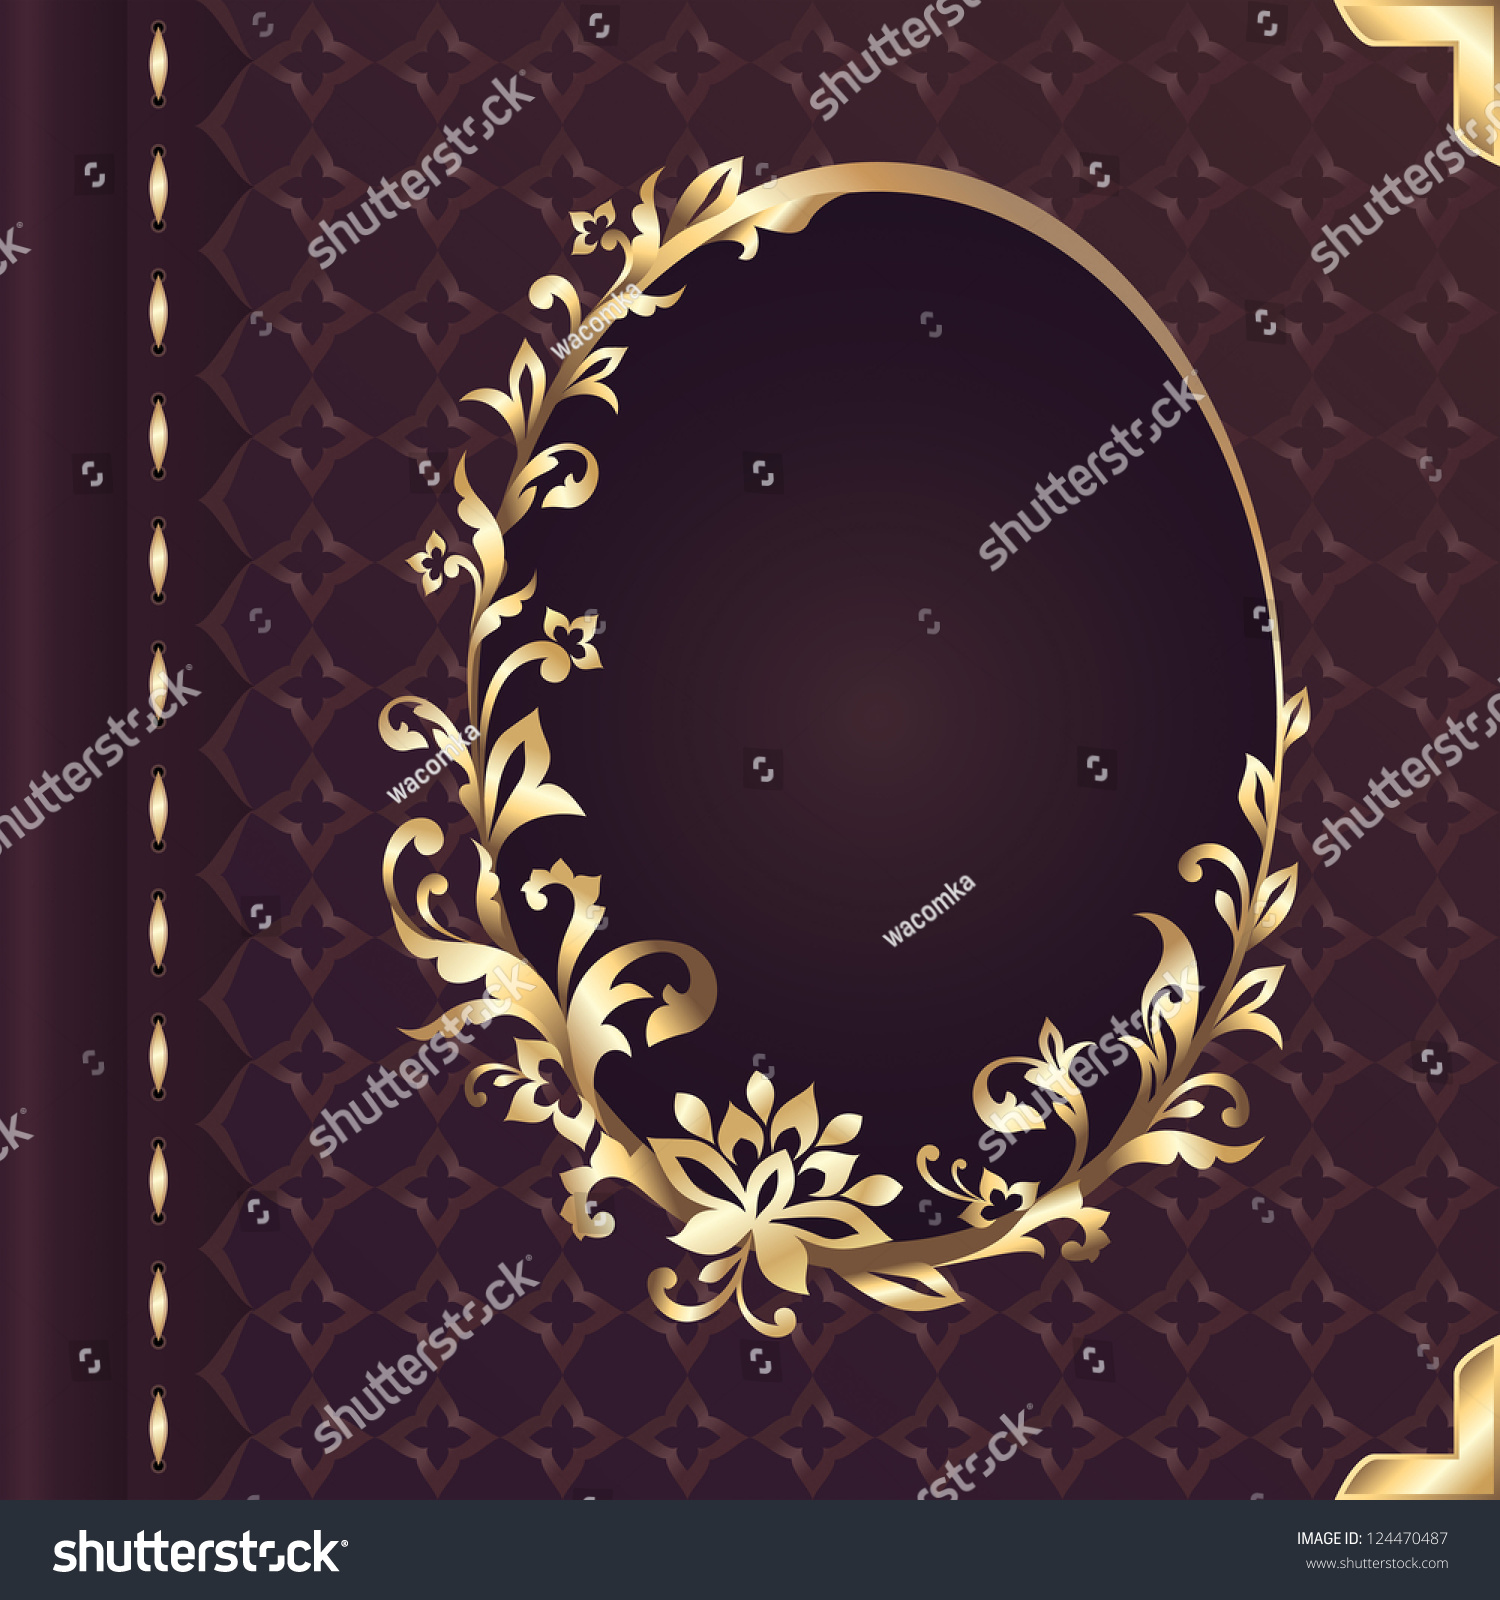 Book Cover Design With Flowers ~ Book cover design decorative golden floral stock vector